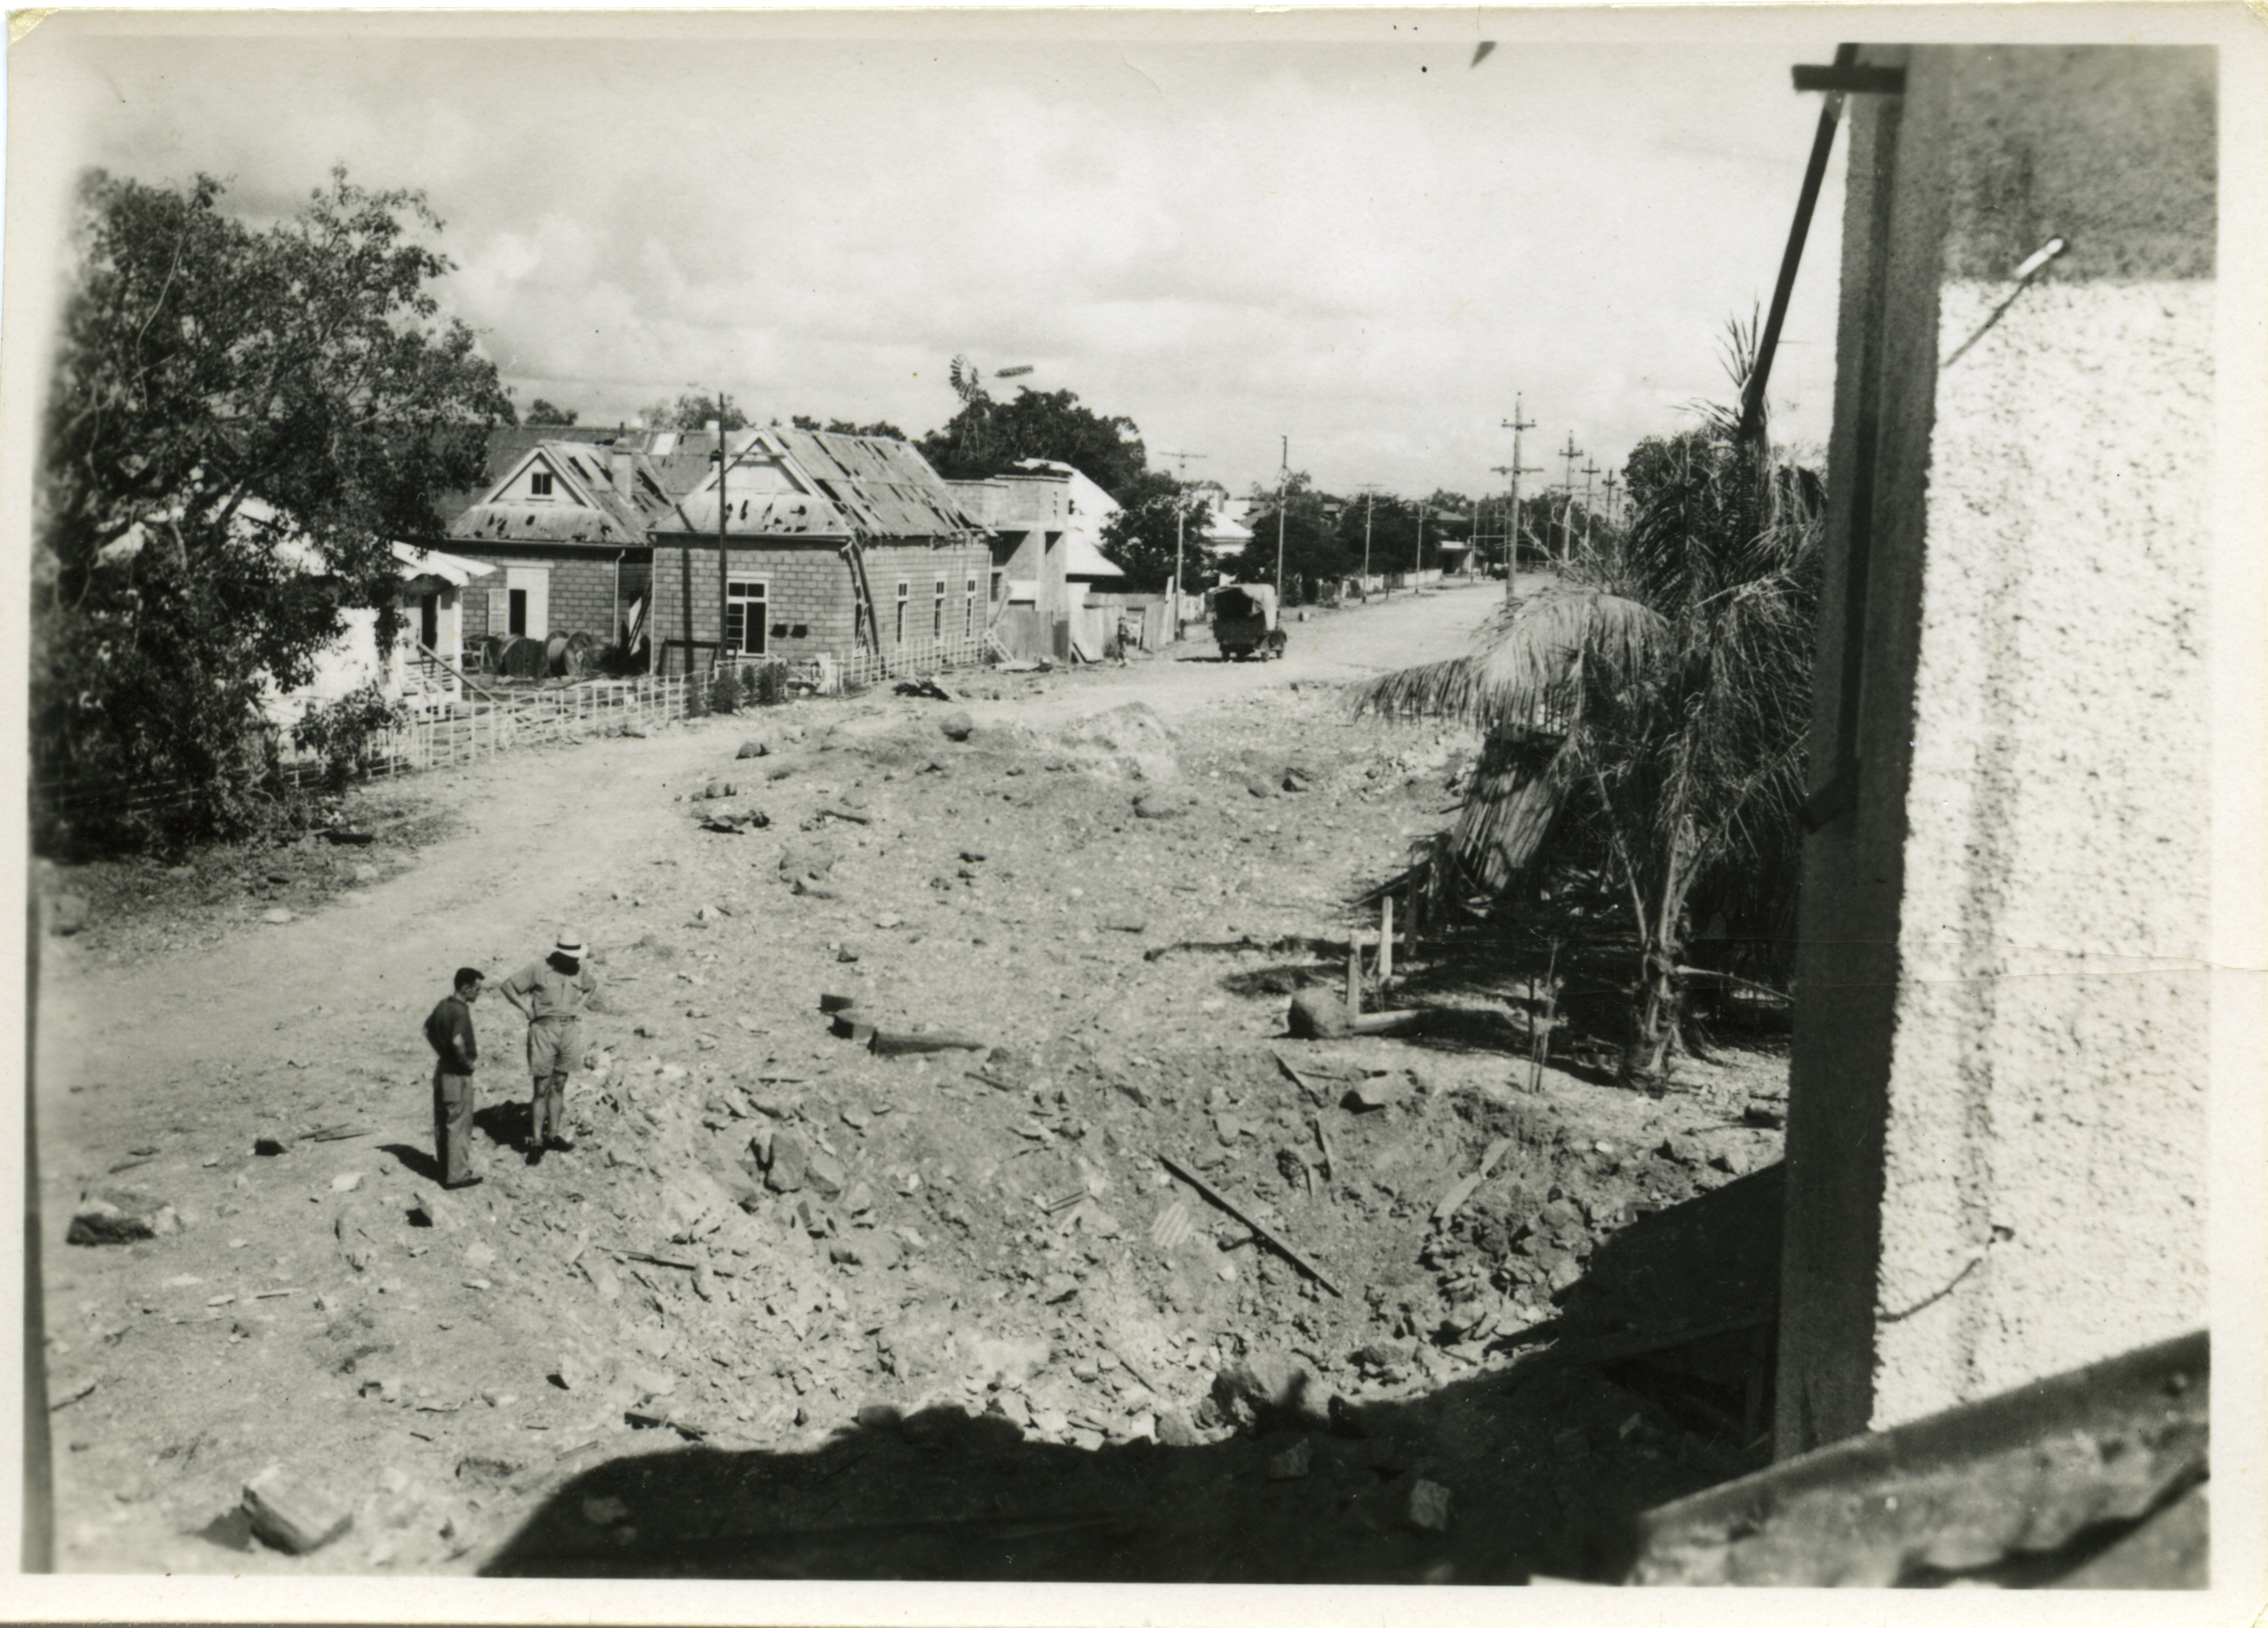 Mitchell Street looking away from Port of Darwin, showing bomb damage to the Post Office, including the new Burnett designed extension, and Post and Telegraph and cable precinct. Crater near the Police Barracks. This extensive damage caused by first Japanese bombing on 19/2/1942.